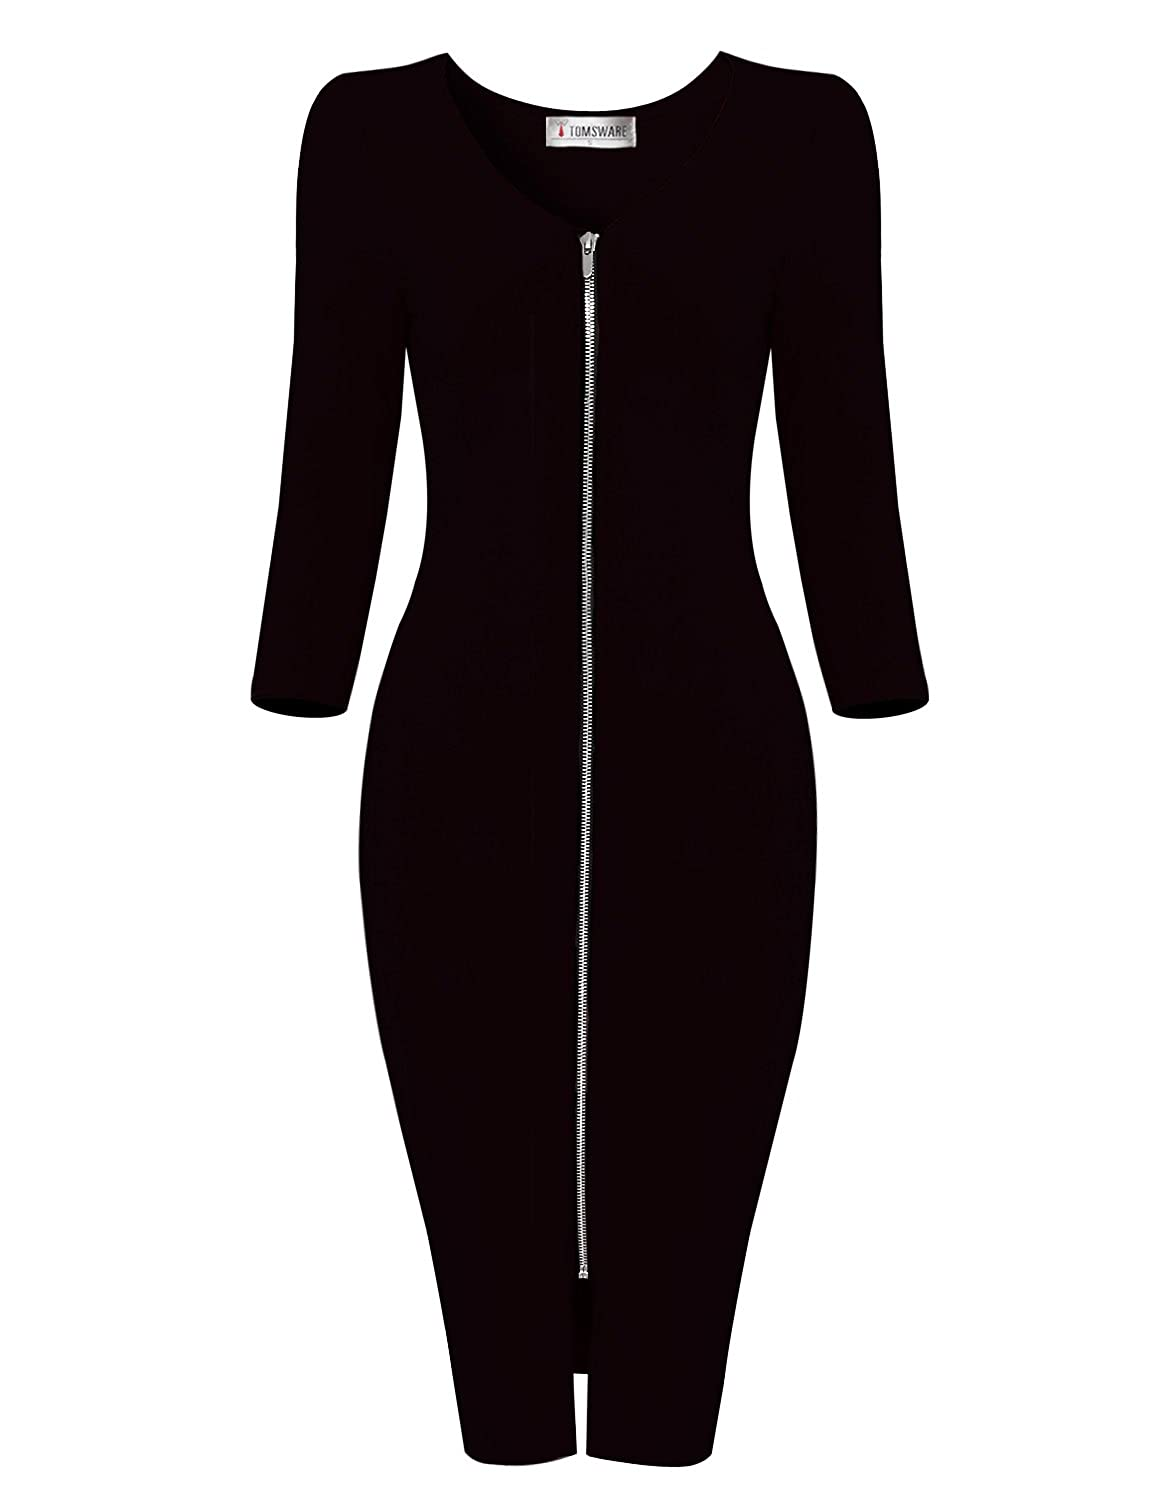 Black TAM WARE Womens Sophisticated Front Zip 3 4 Sleeve Bodycon Midi Dress